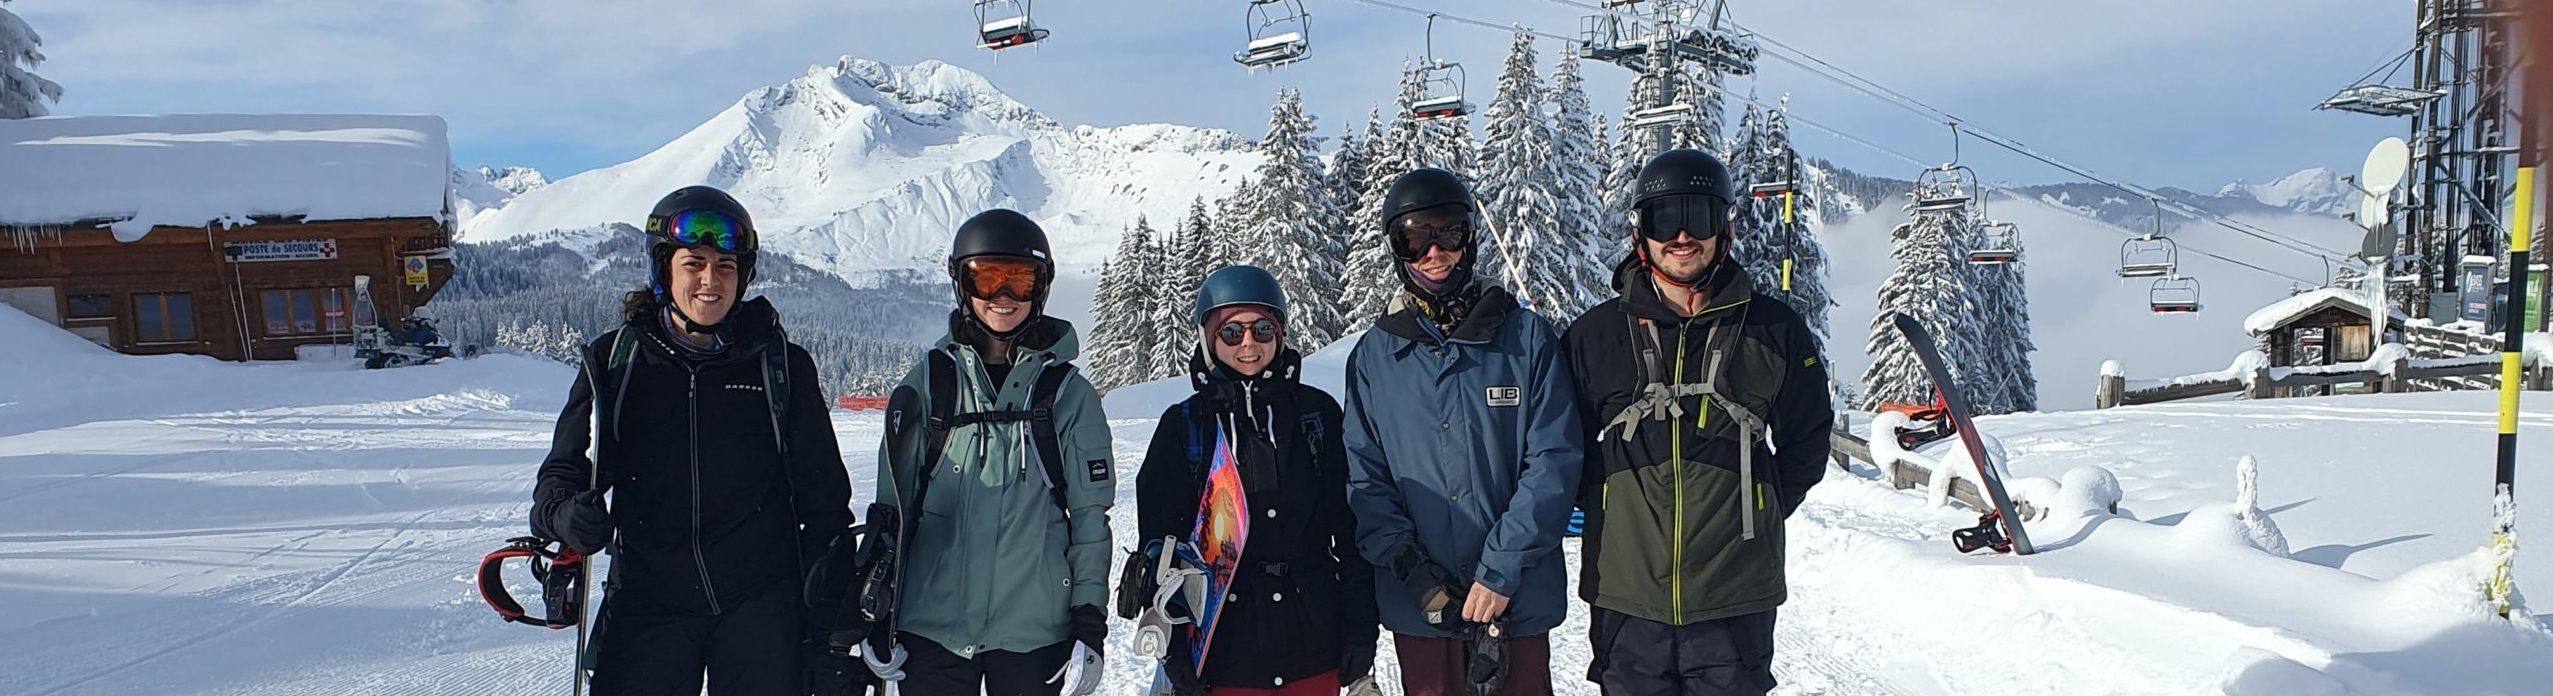 Now is the time to book your Group Ski Trip